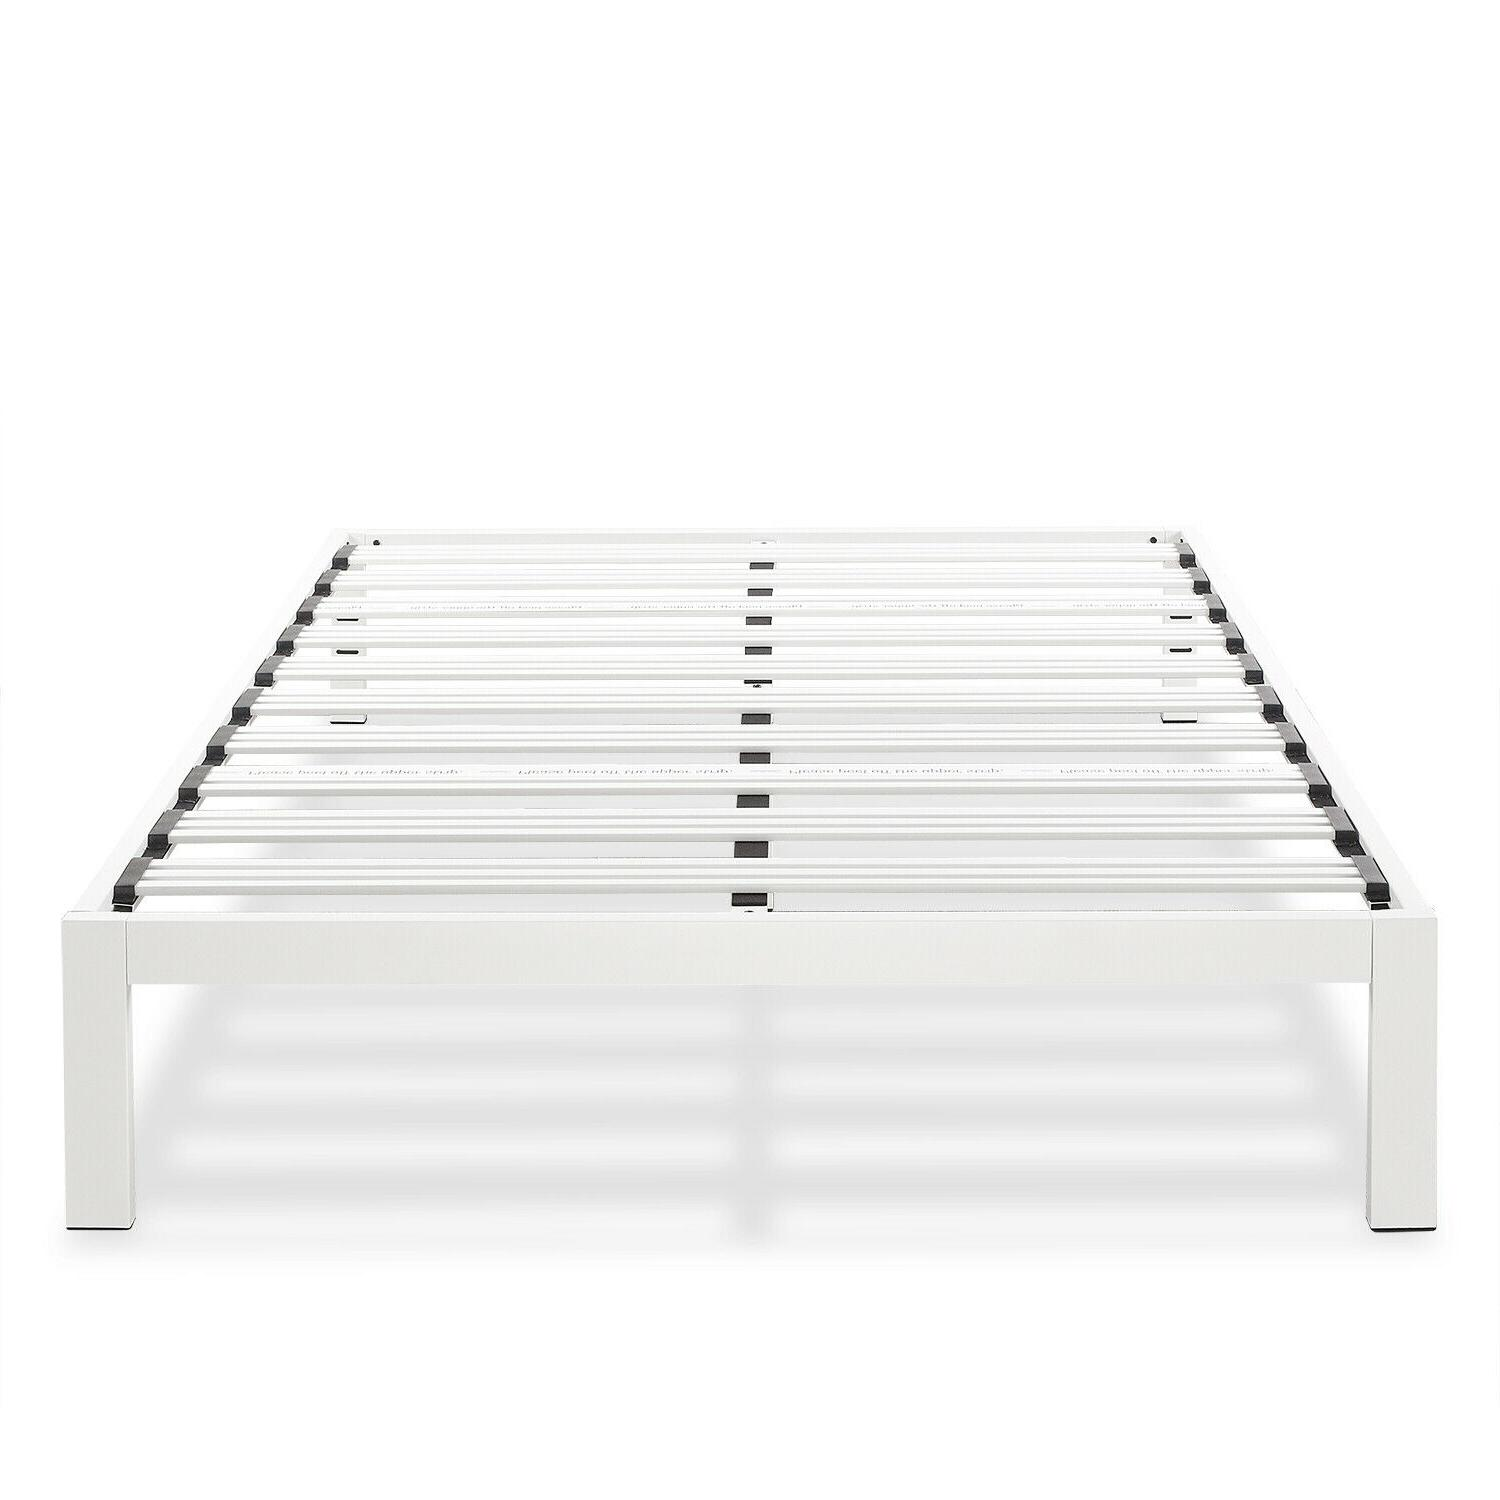 14'' Platform Steel Underbed Storage Twin